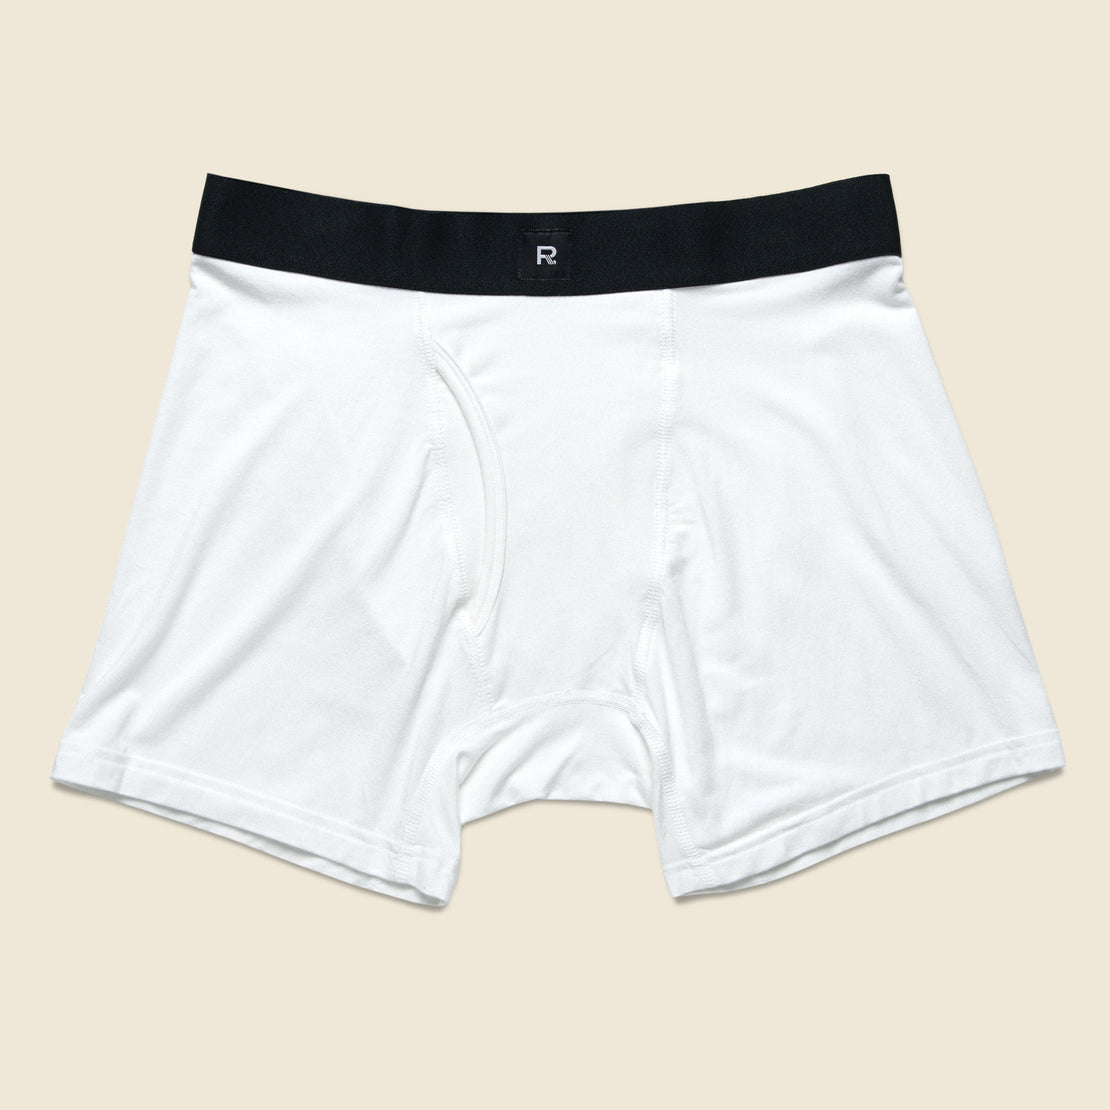 Richer Poorer Lewis Boxer Brief - White